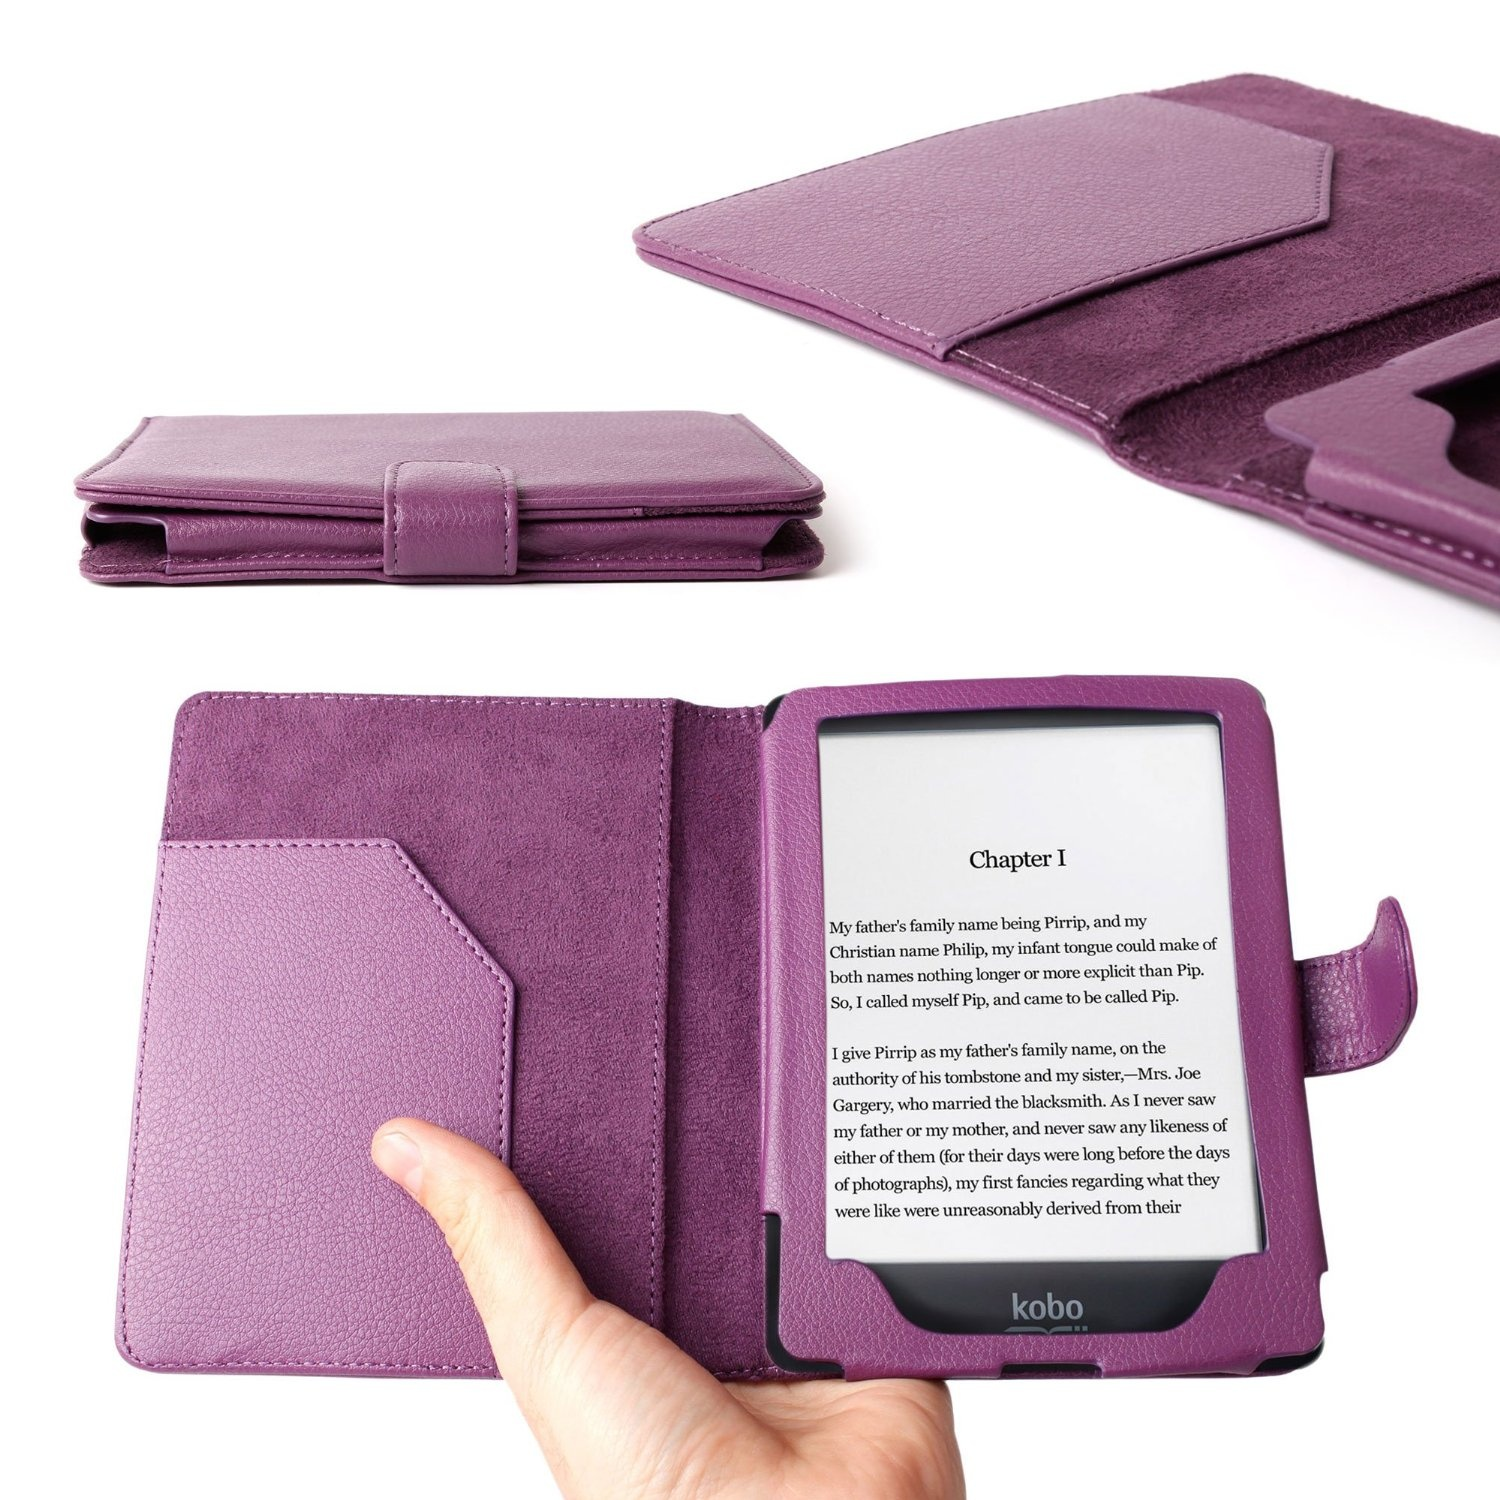 Kobo Glo Cover Electronics  Buy Online from Fishpond.com.au 6911c609470b